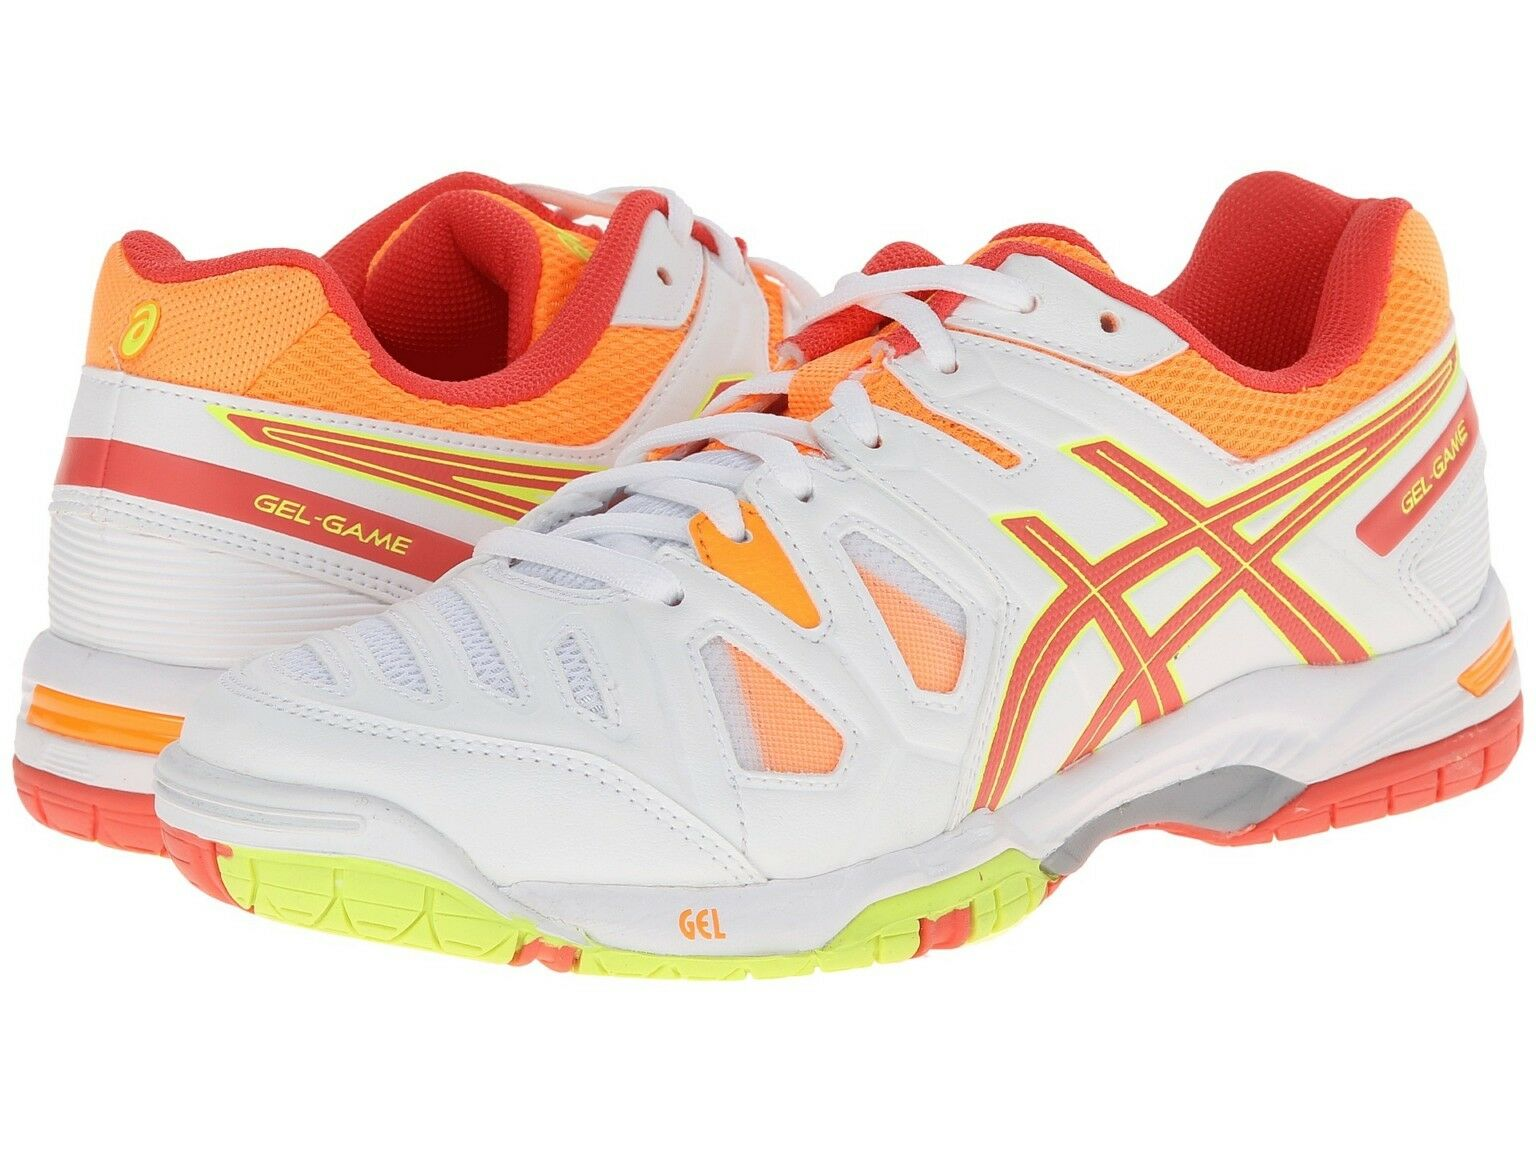 Chaussure de tennis Asics Gel Game 5 W